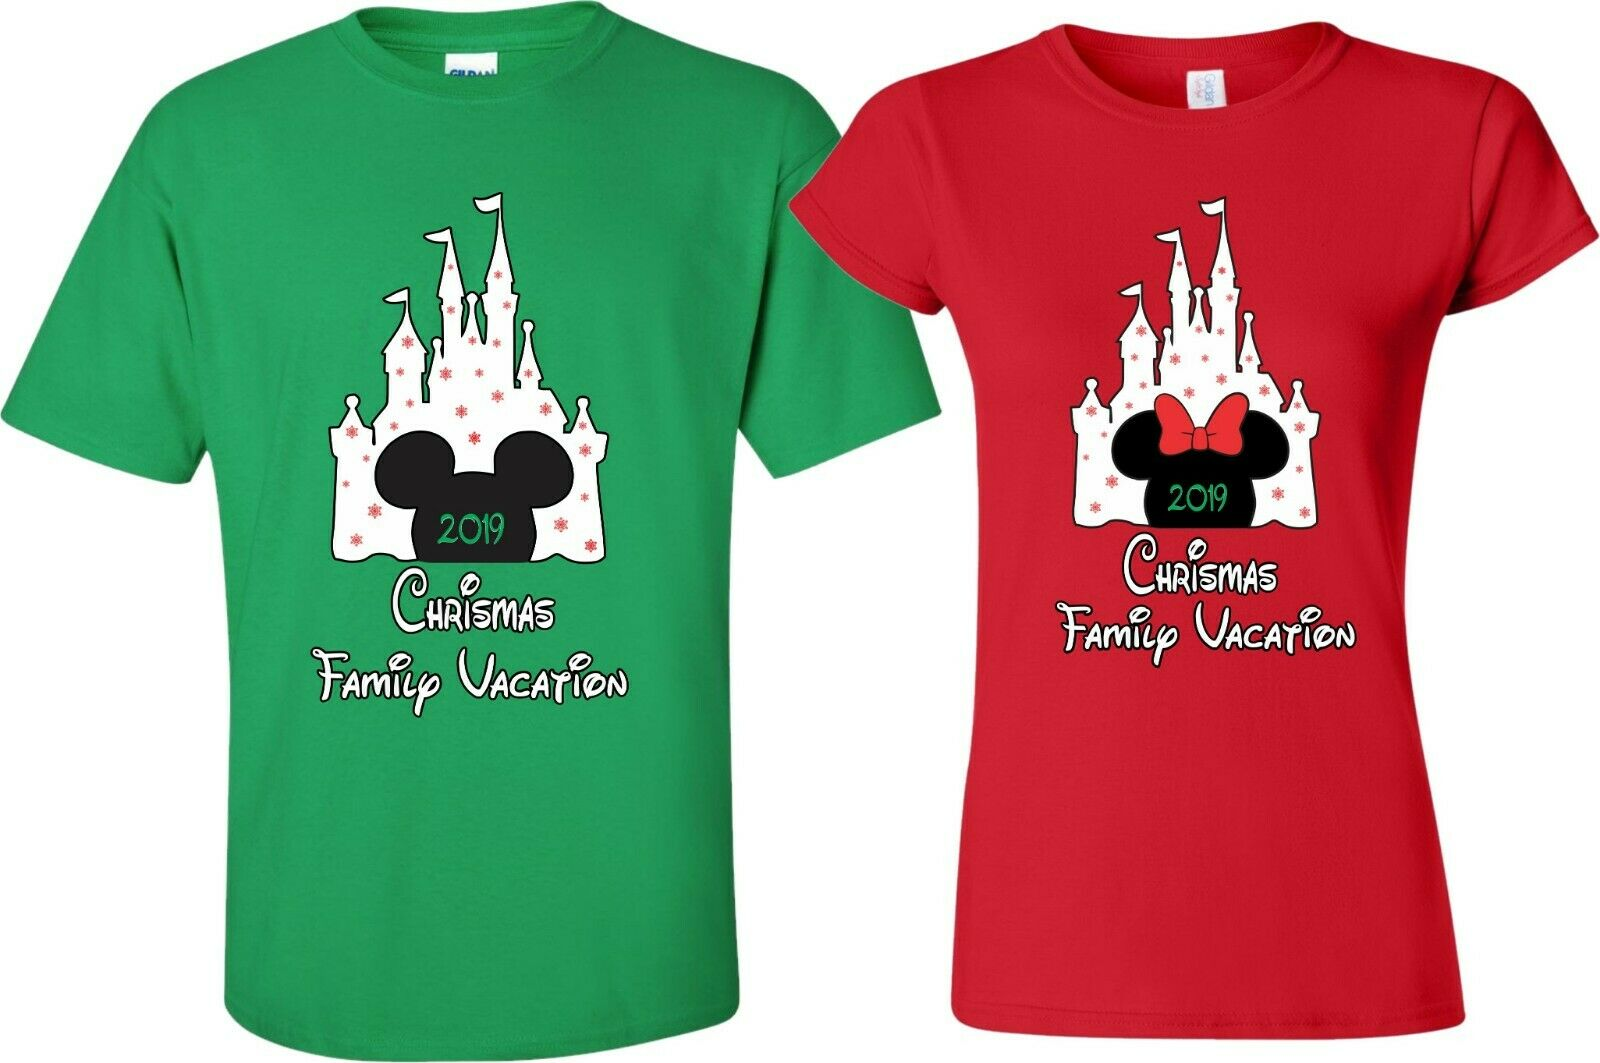 new disney castle family christmas vacation 2018 t shirts minniemickey 1 of 6free shipping